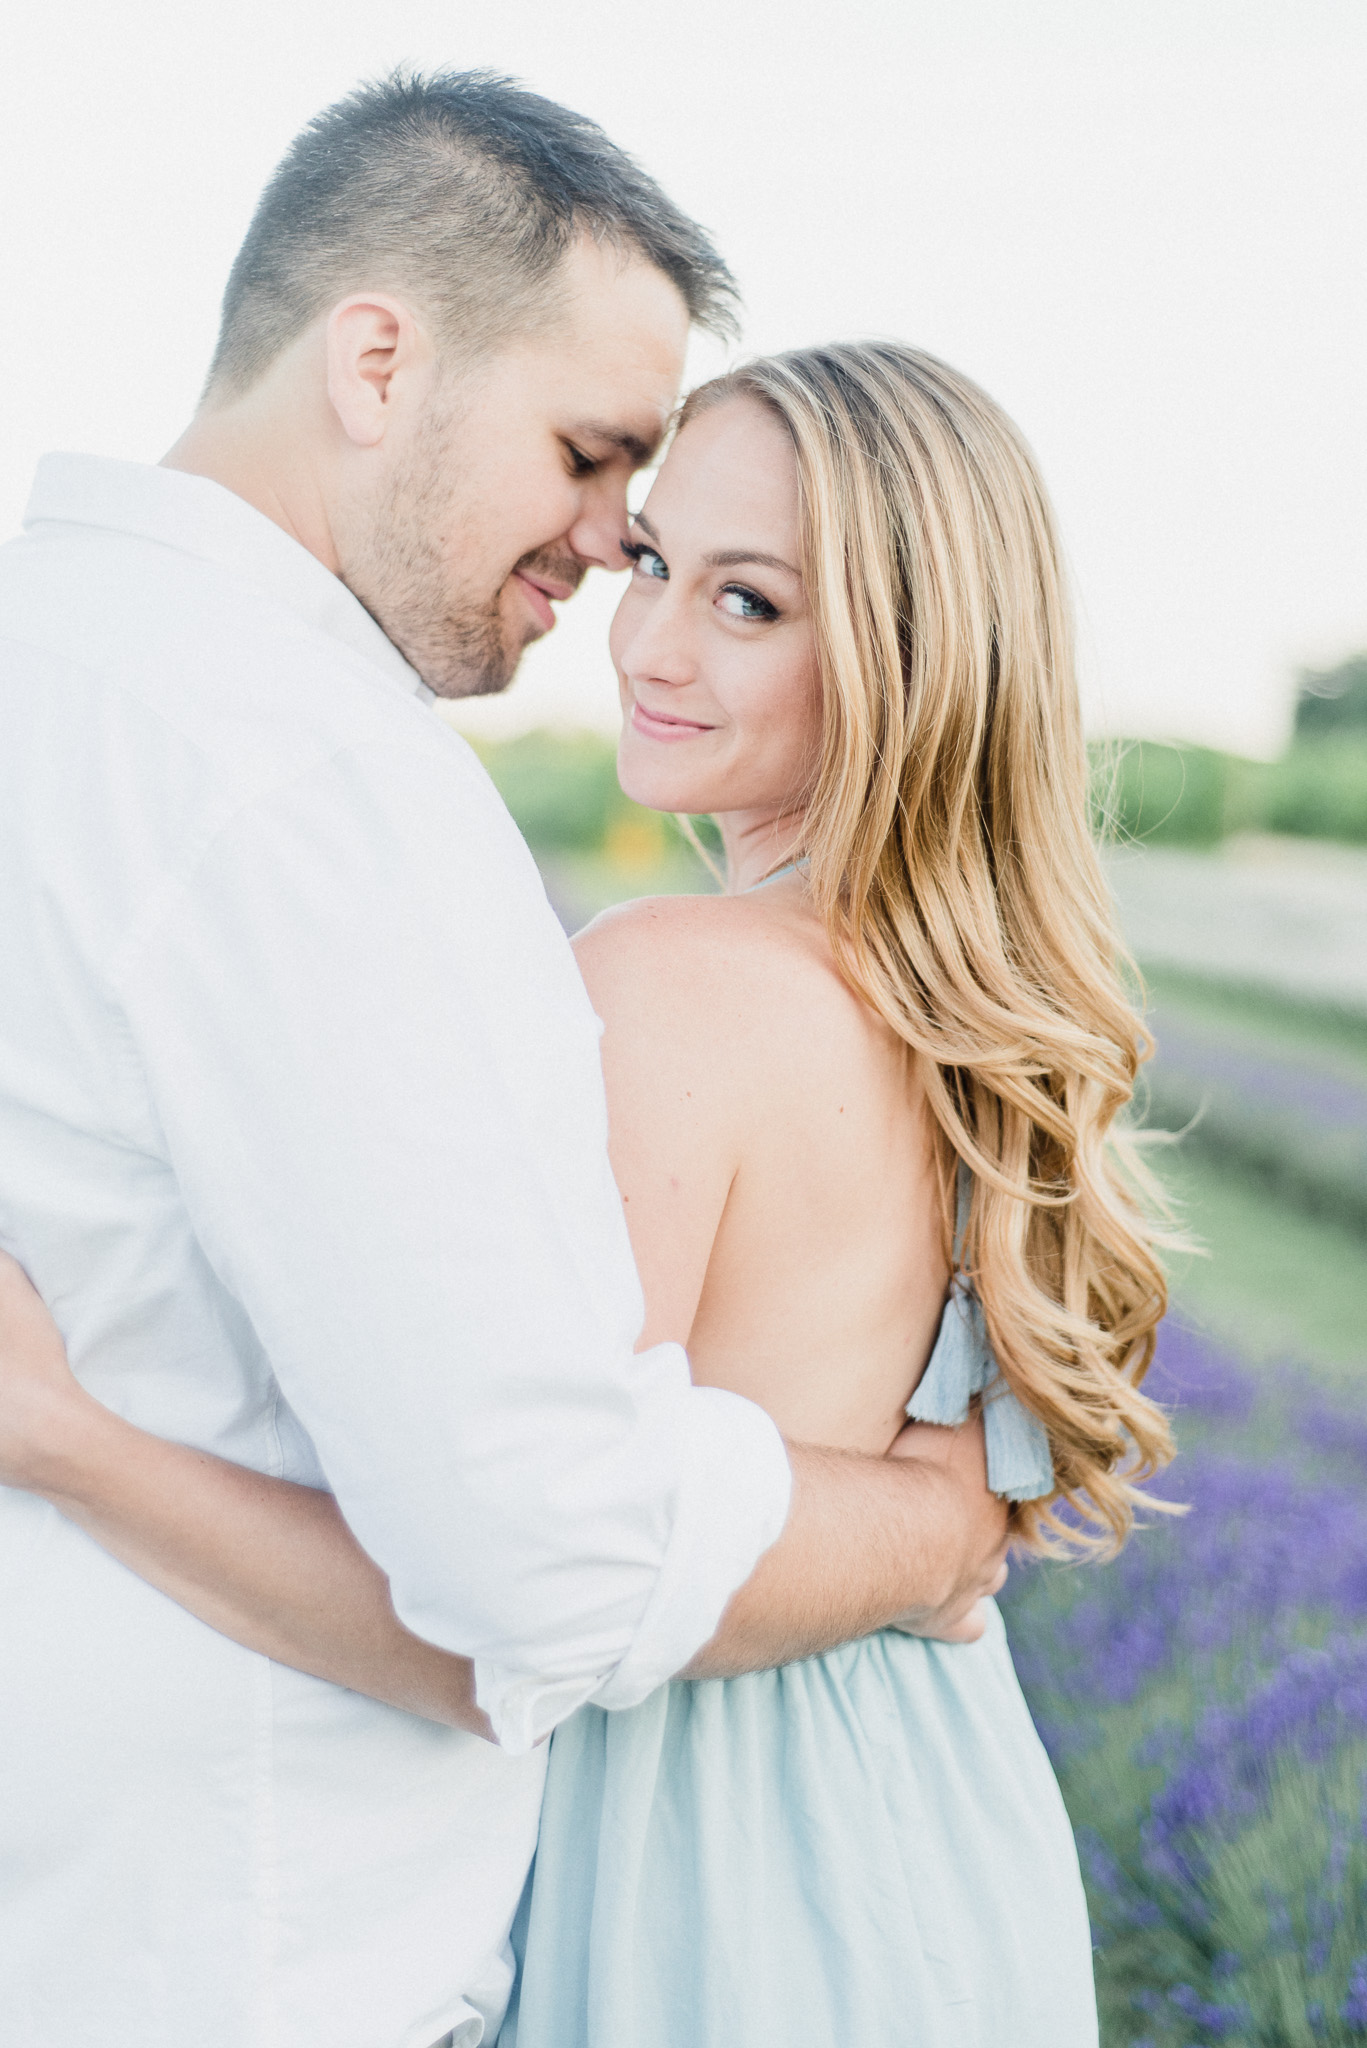 Bonnieheath Estate Lavender & Winery Engagement Session by Jenn Kavanagh Photography